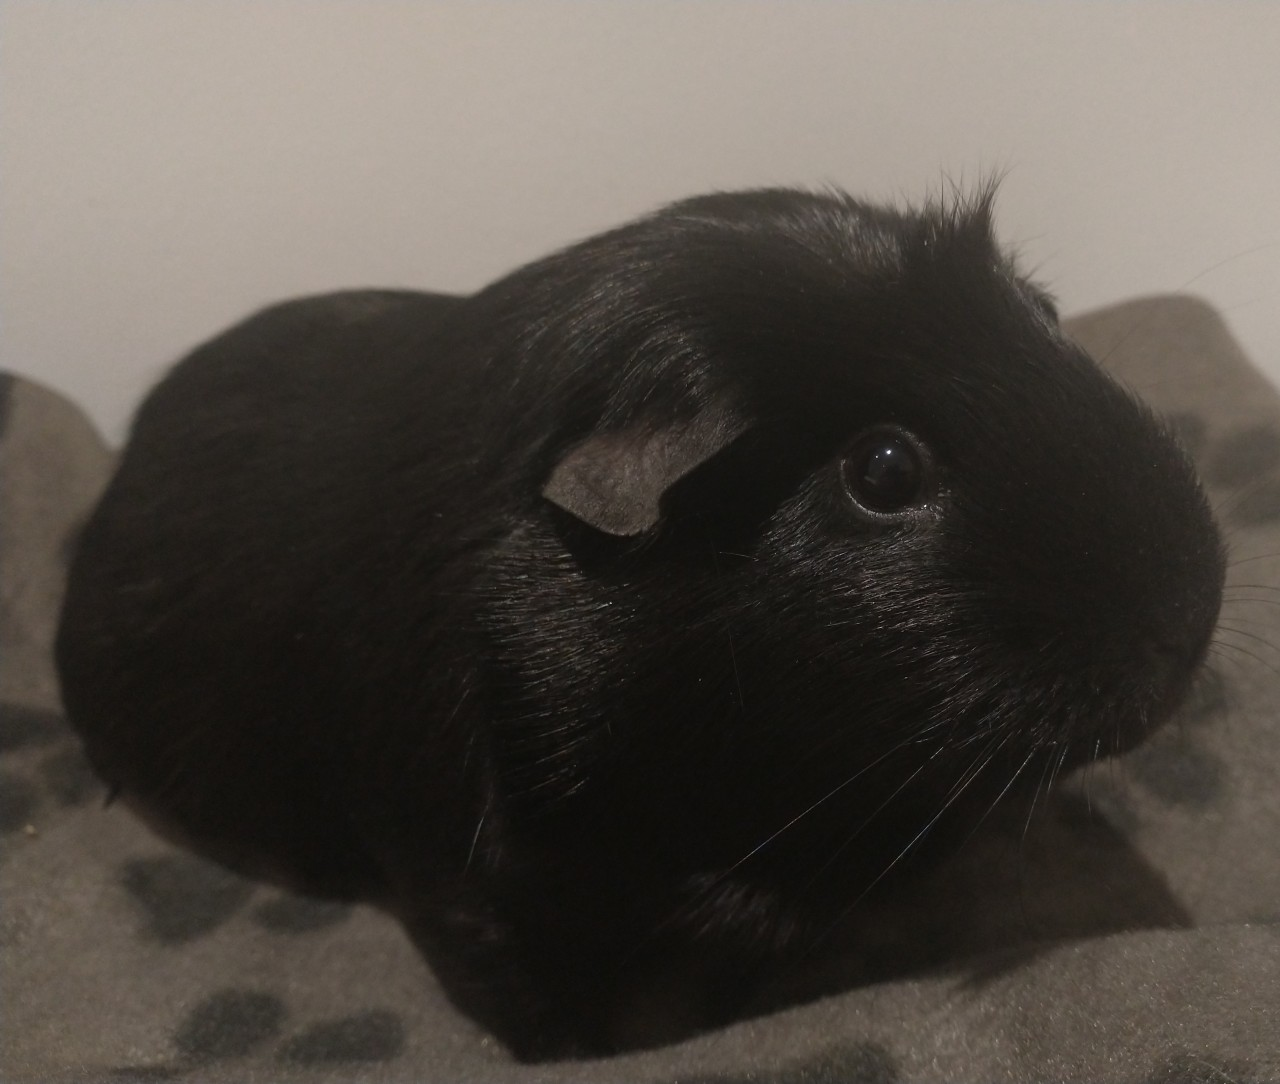 Imposter rabbit would like permission for snuggles, granted. #cute#beautiful#guinea pig#raven#void